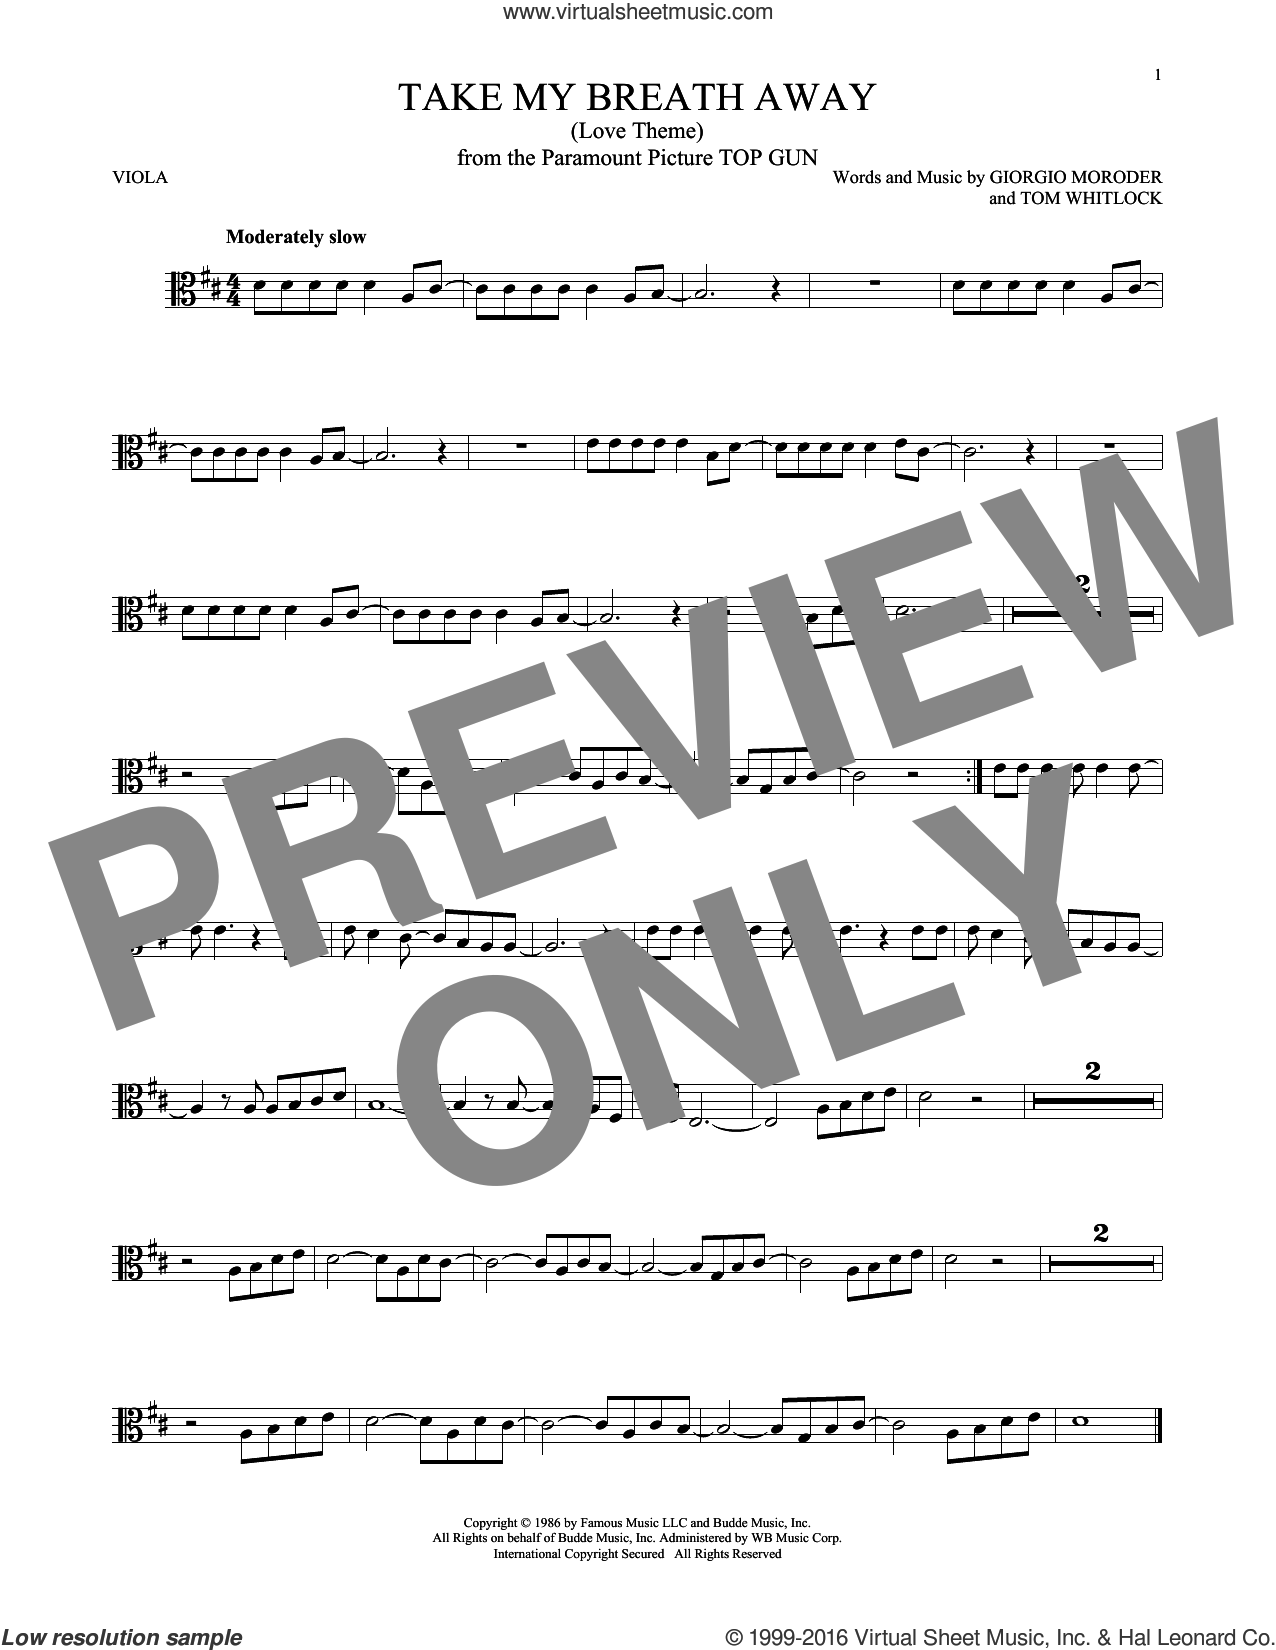 Take My Breath Away (Love Theme) sheet music for viola solo by Giorgio Moroder, Irving Berlin, Jessica Simpson and Tom Whitlock, intermediate skill level